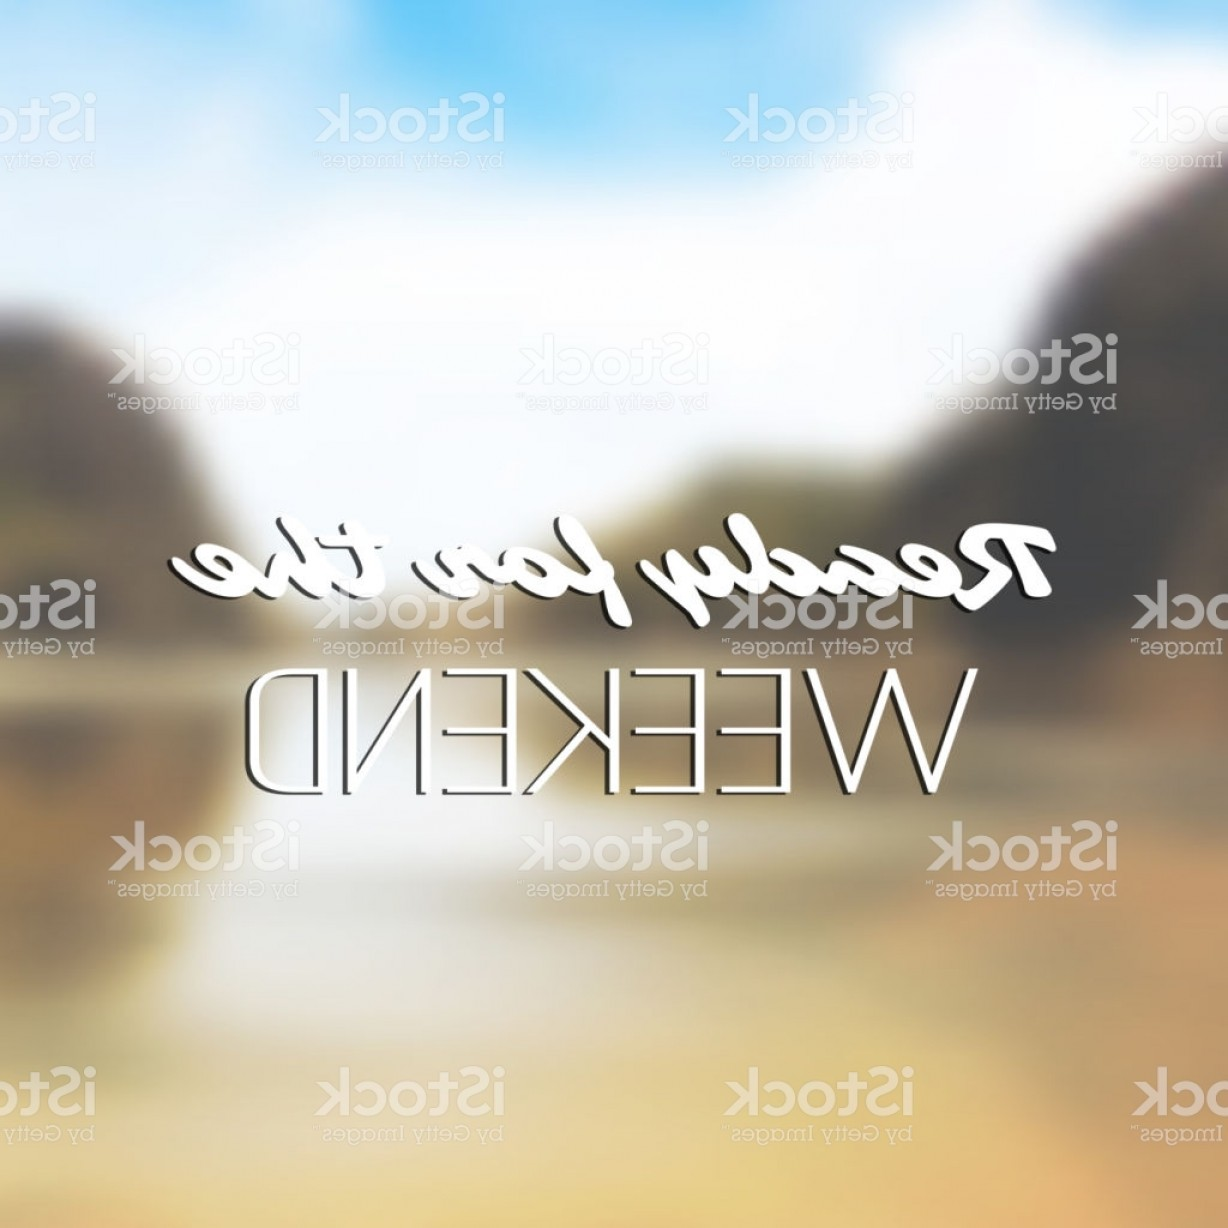 Inspirational Backgrounds Vector: Inspirational Quote Ready For The Weekend On Blurry Beach Background Gm